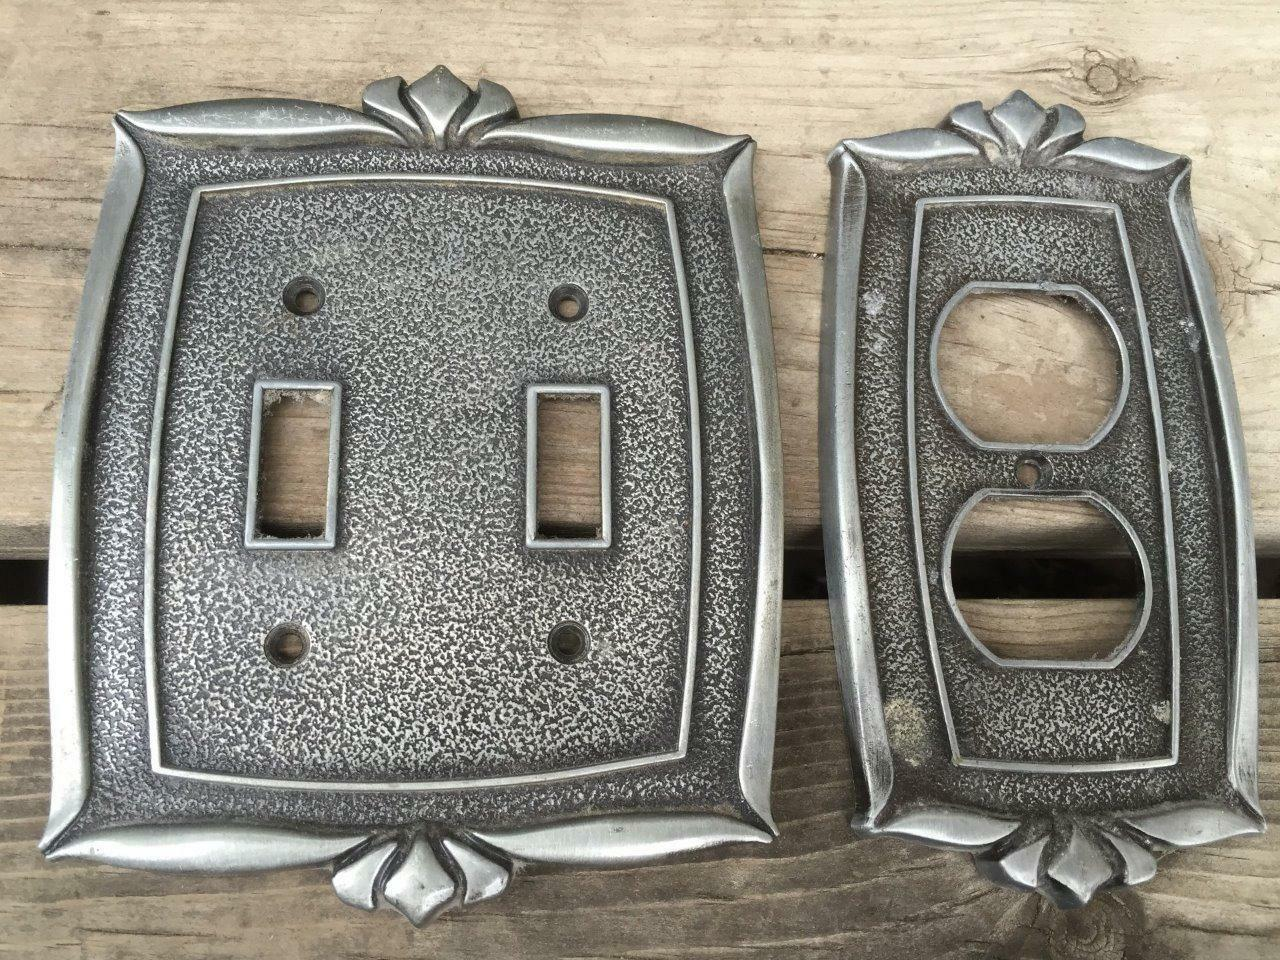 mPair Vintage Donner 1970's Metal Double Light Switch & Wall Outlet Cover ReTrO